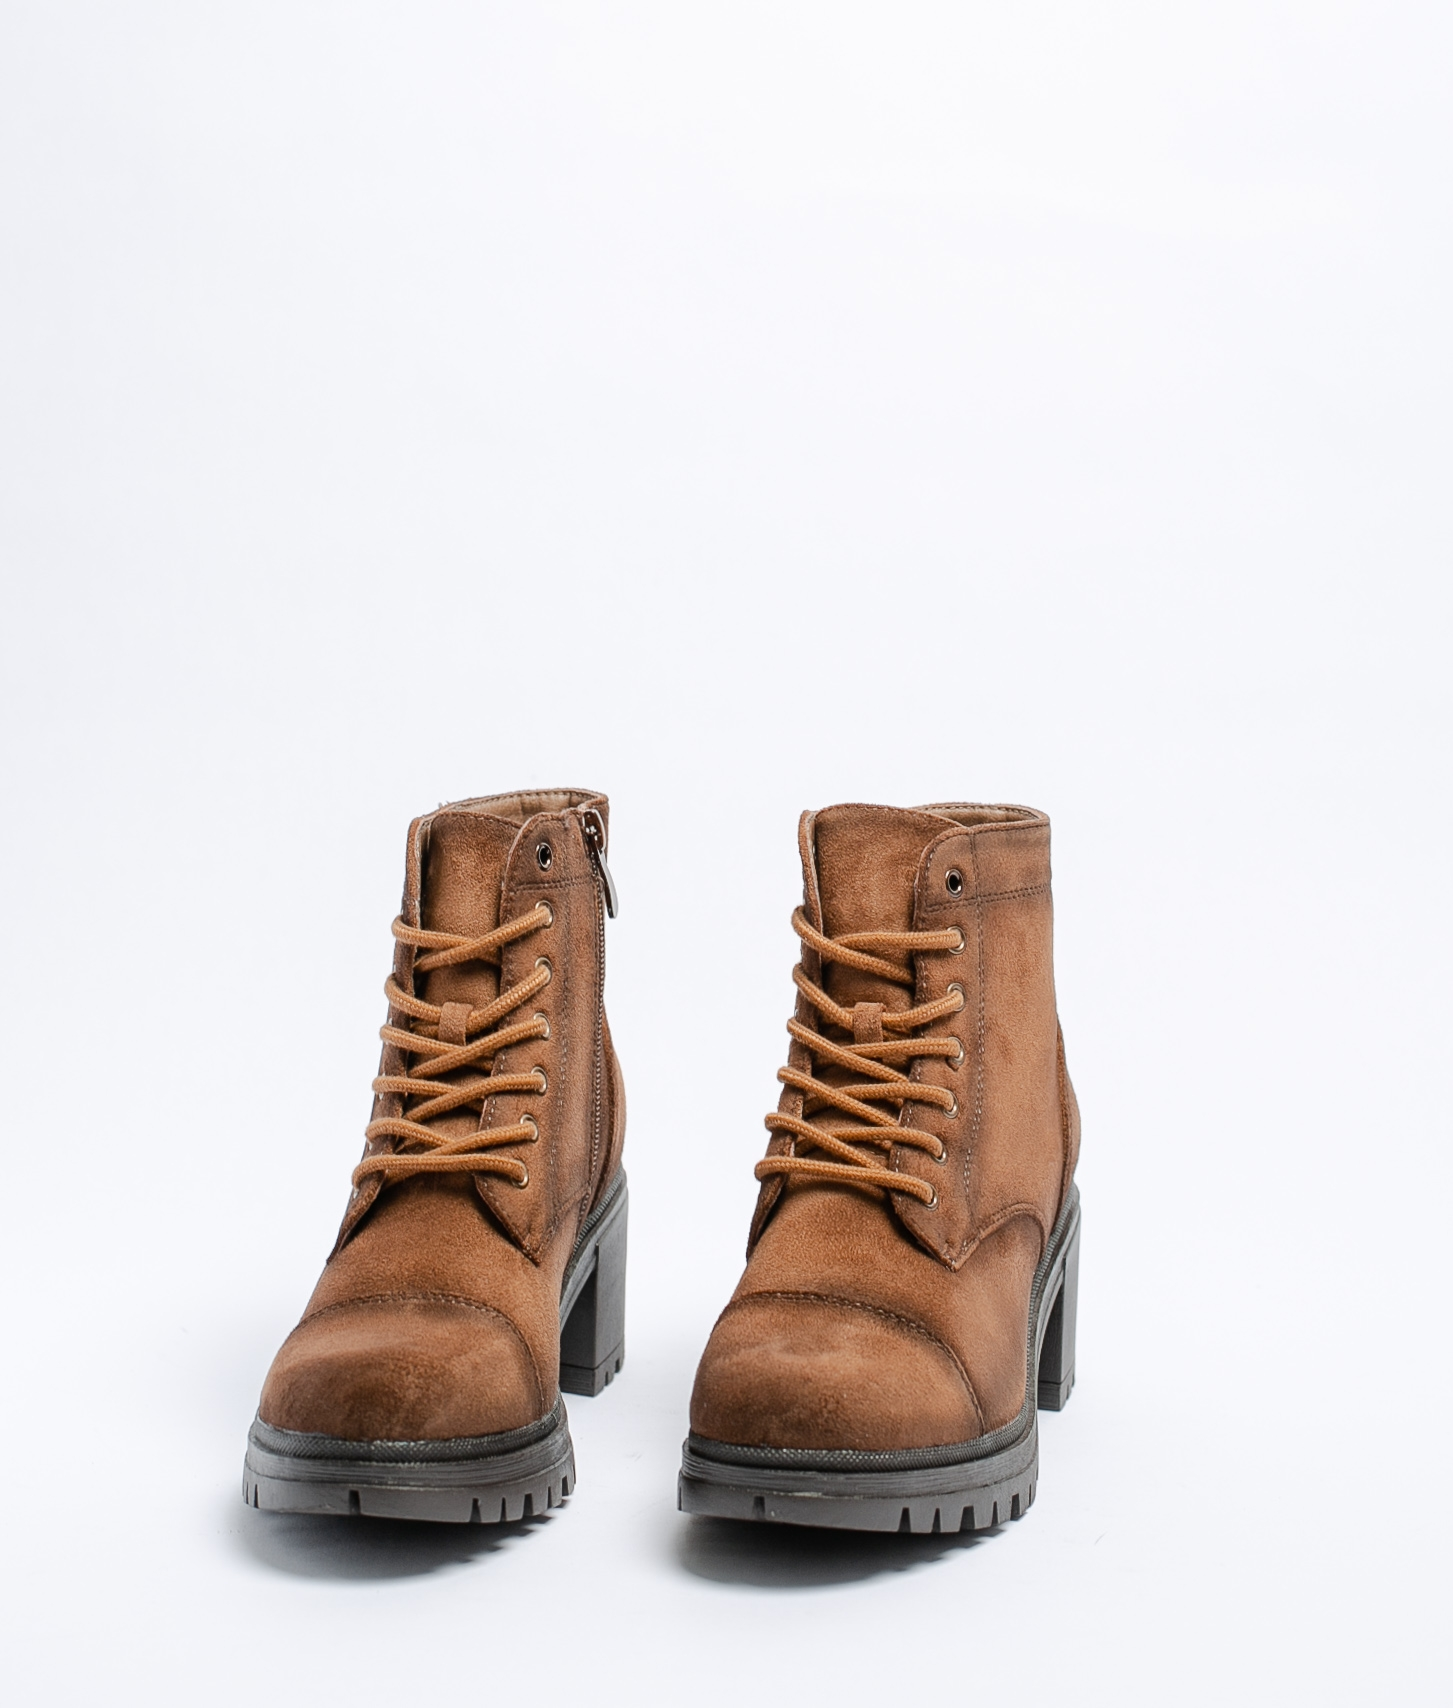 Low Boot Amica - Khaki Suede